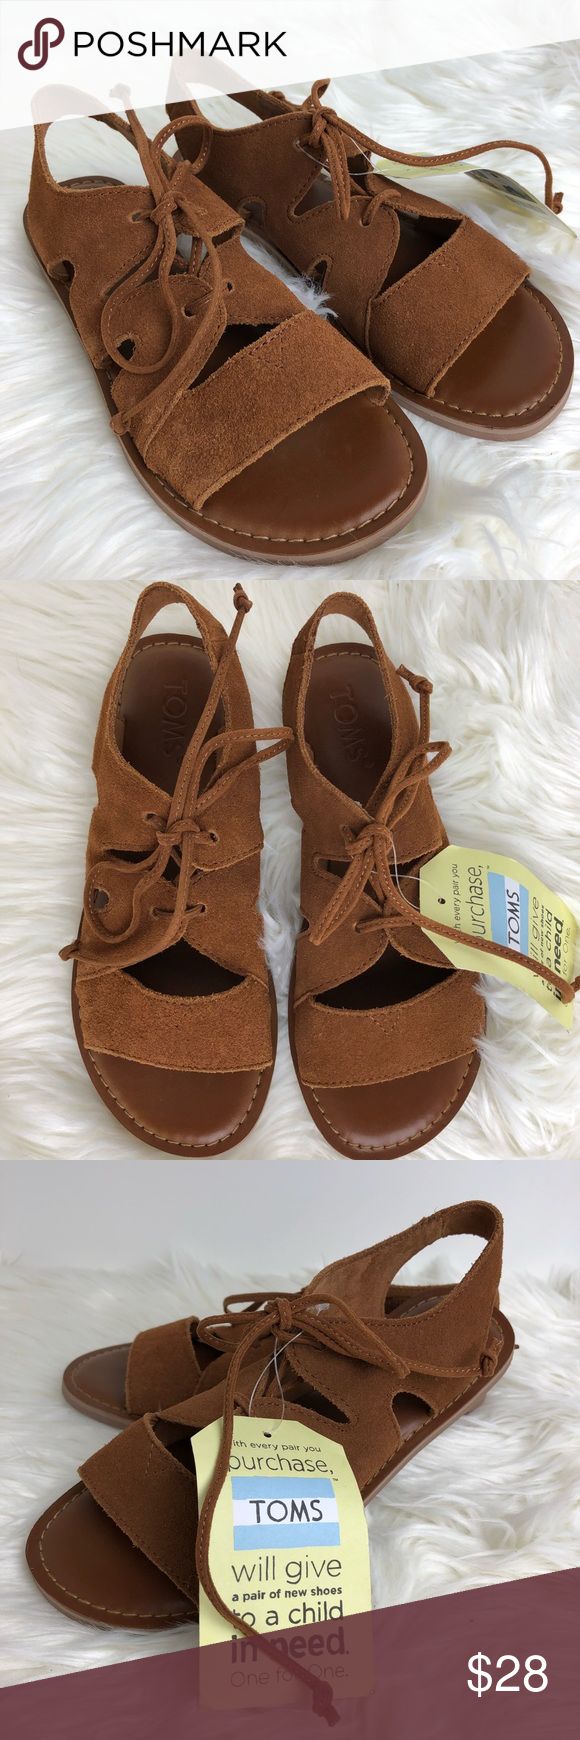 d6d42cca22e Toms Calipso Brown Tie Sandals NWT Toms Calipso sandals Color  Brown Size   5 Tie up NWOB Tag attached Suede slight discoloration  shown in last pic  Toms ...